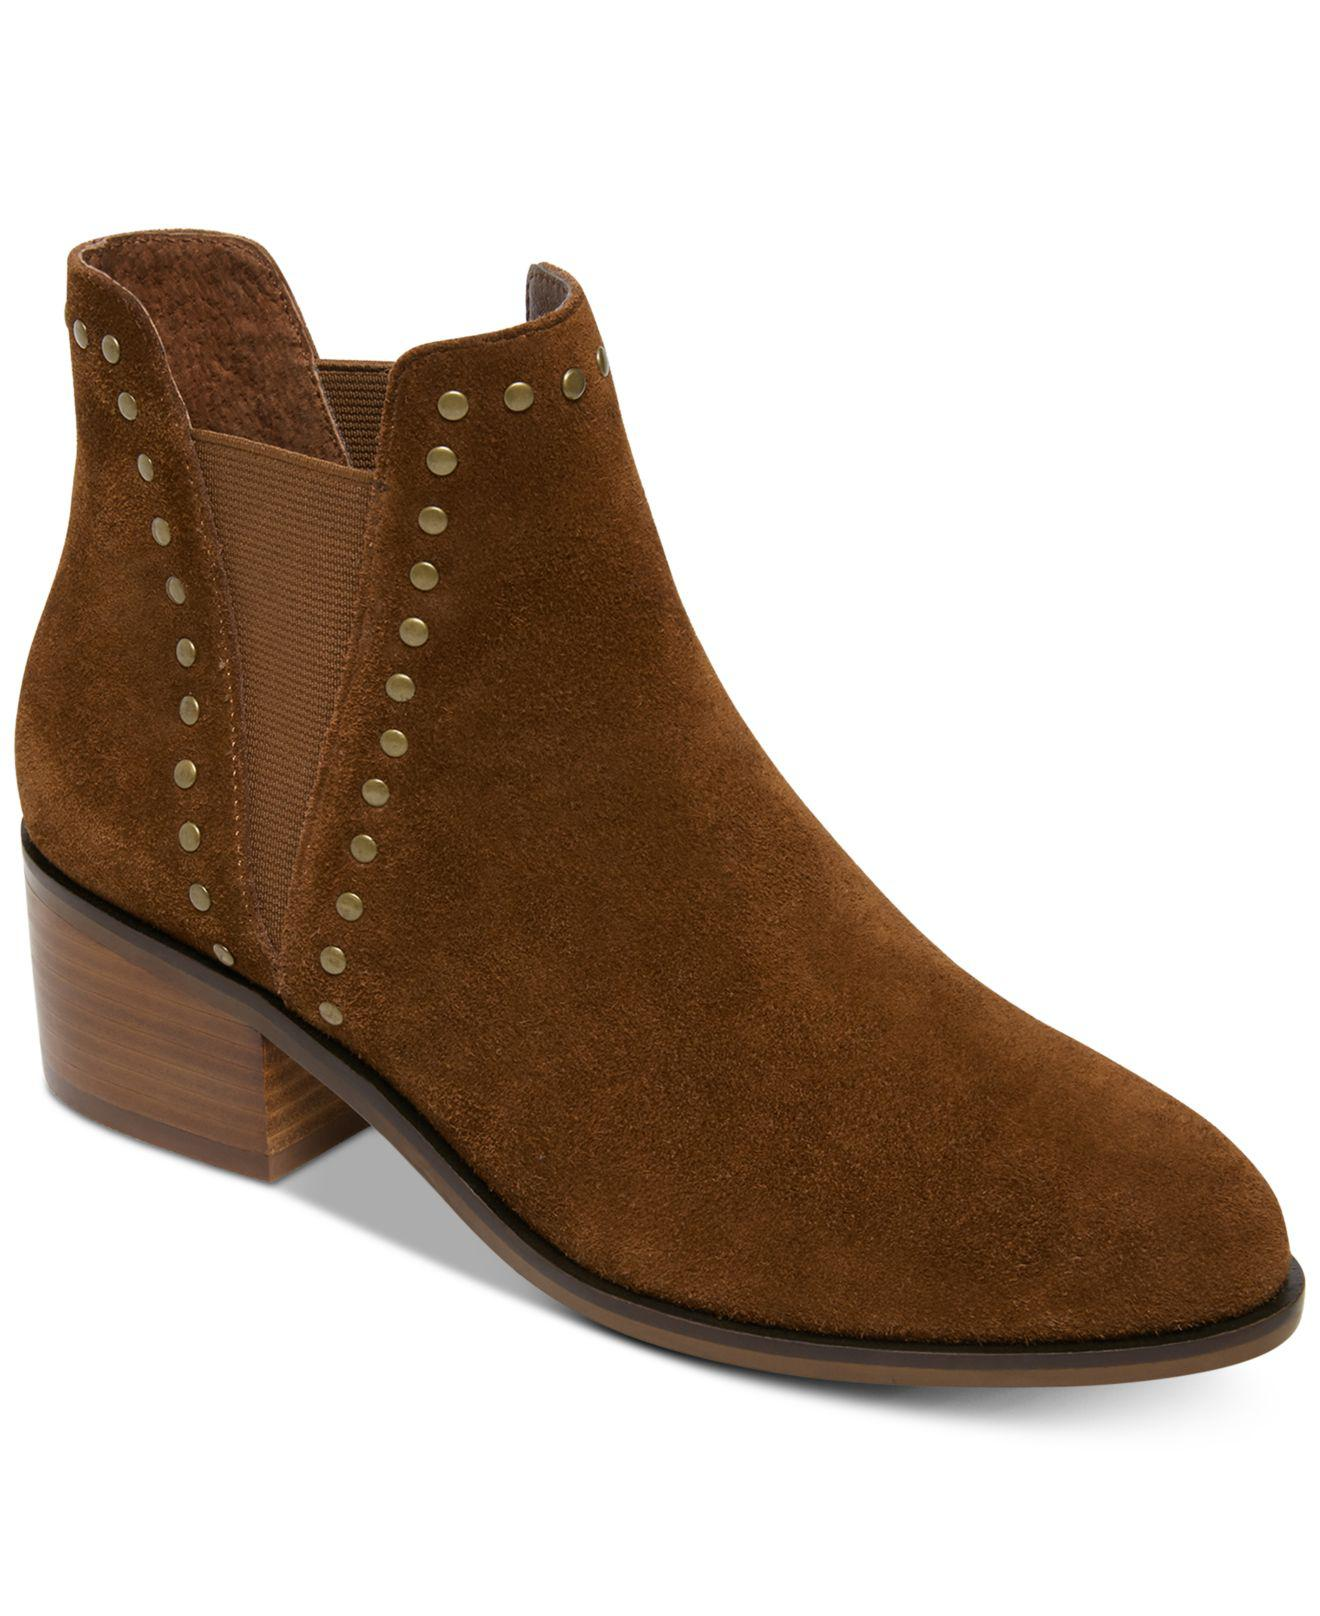 6ca13772283 Lyst - Steve Madden Cade Booties in Brown